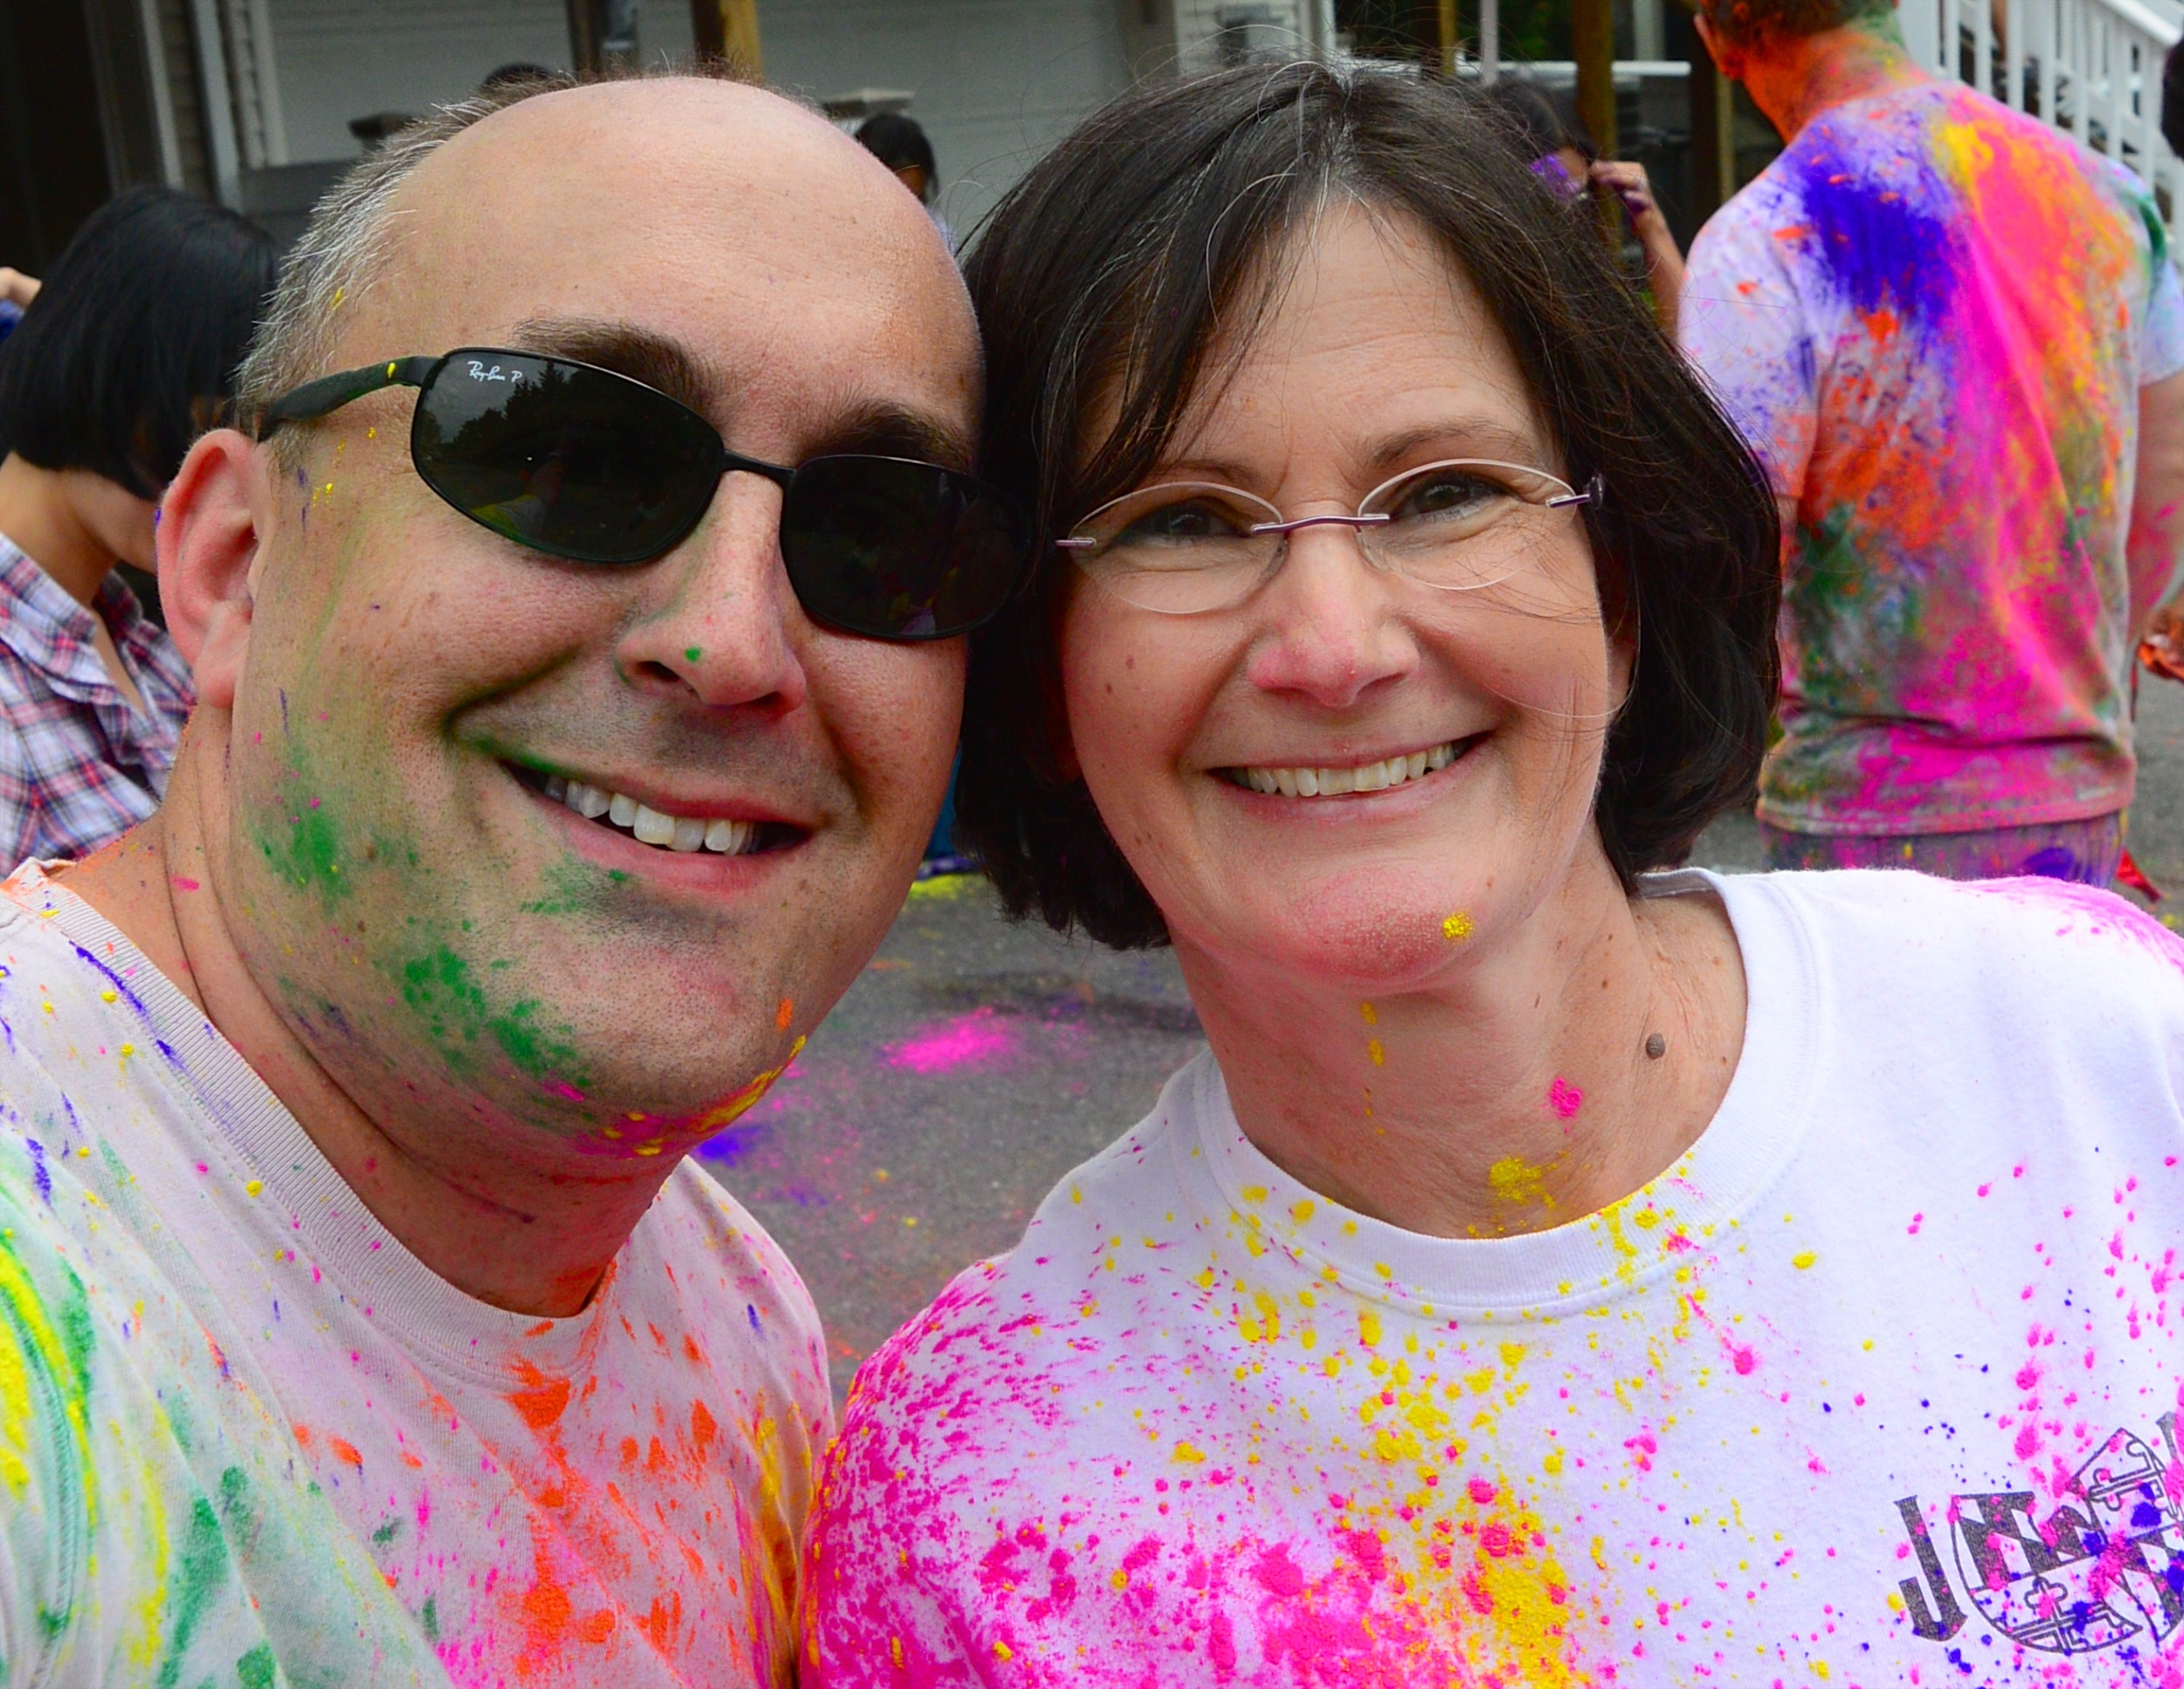 Trish Traylor and I at our annual summer kickoff color party. Oncology nurses are the most amazing human beings ever!